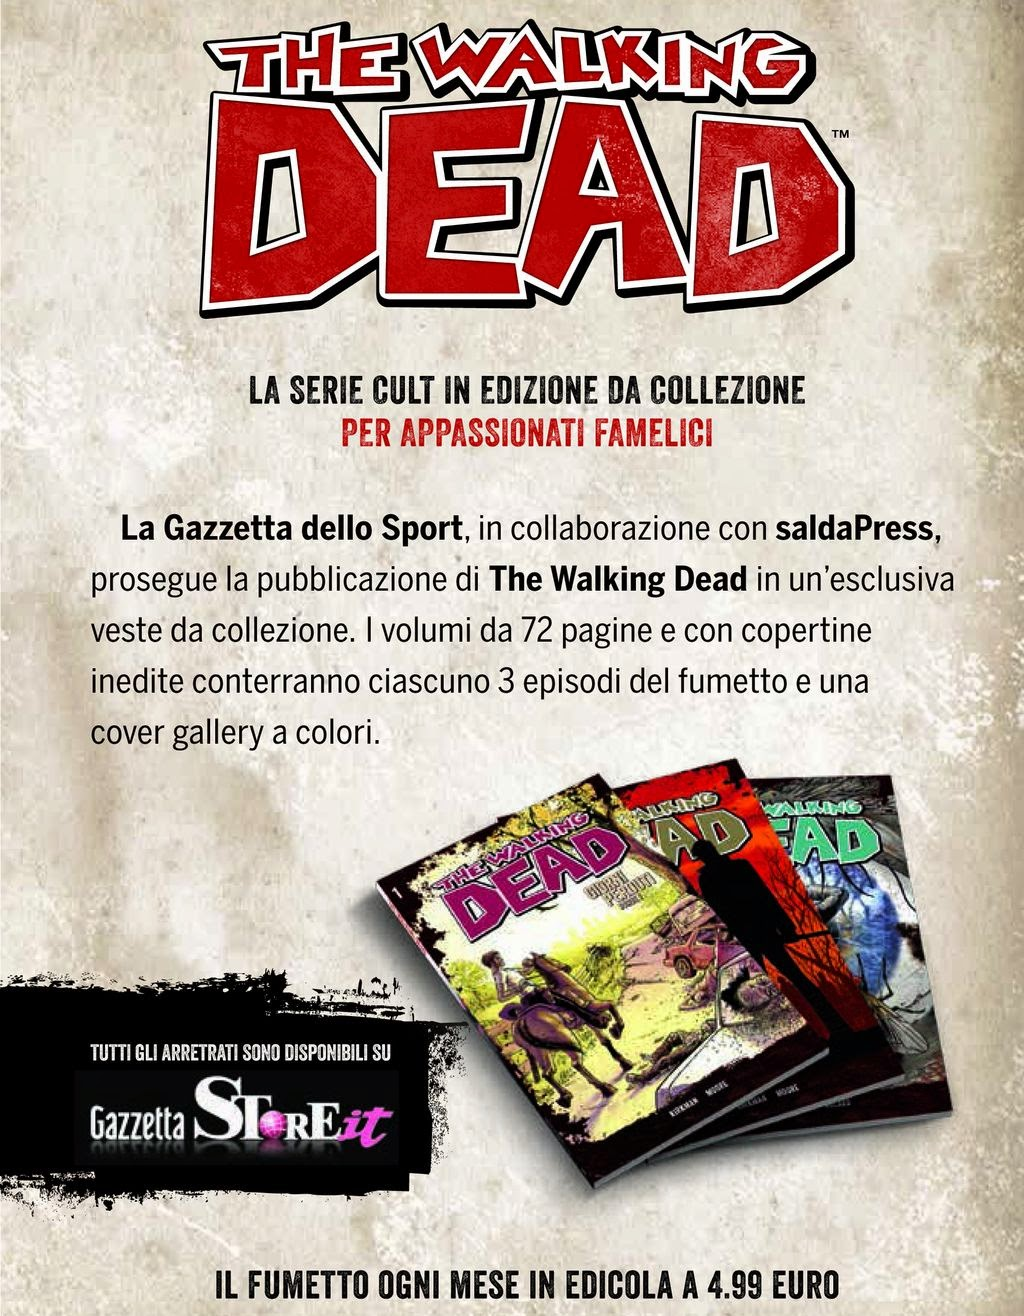 The Walking Dead - Gazzetta dello Sport